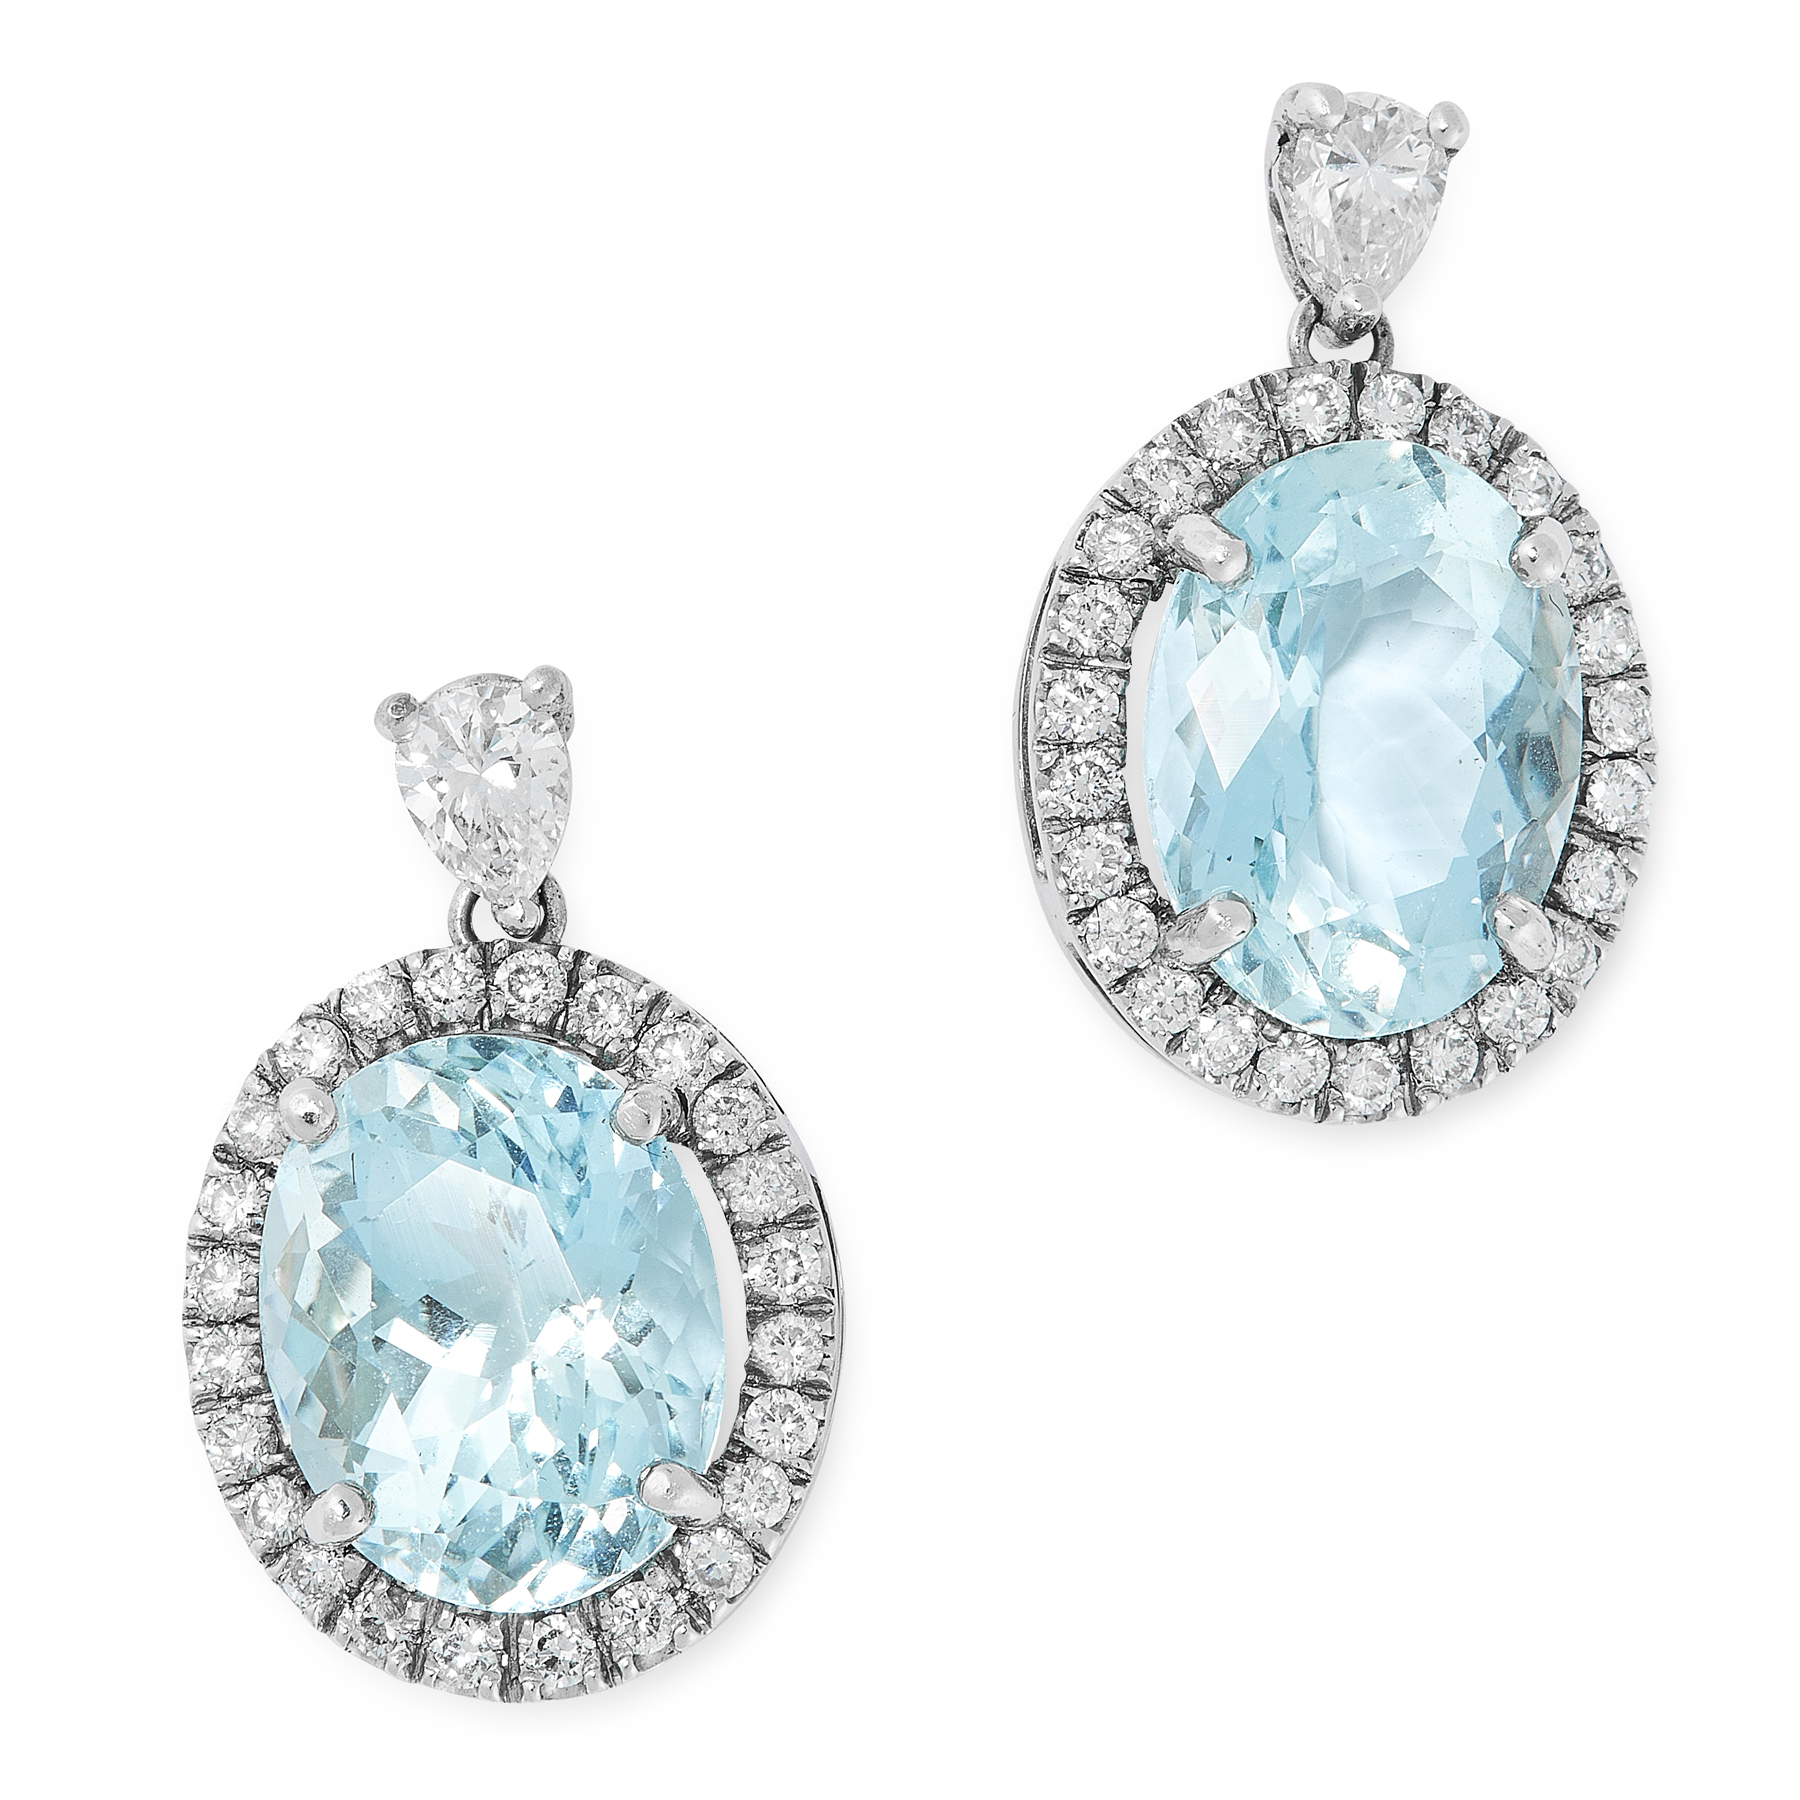 A PAIR OF AQUAMARINE AND DIAMOND EARRINGS in white gold, each set with an oval cut aquamarine of 4.